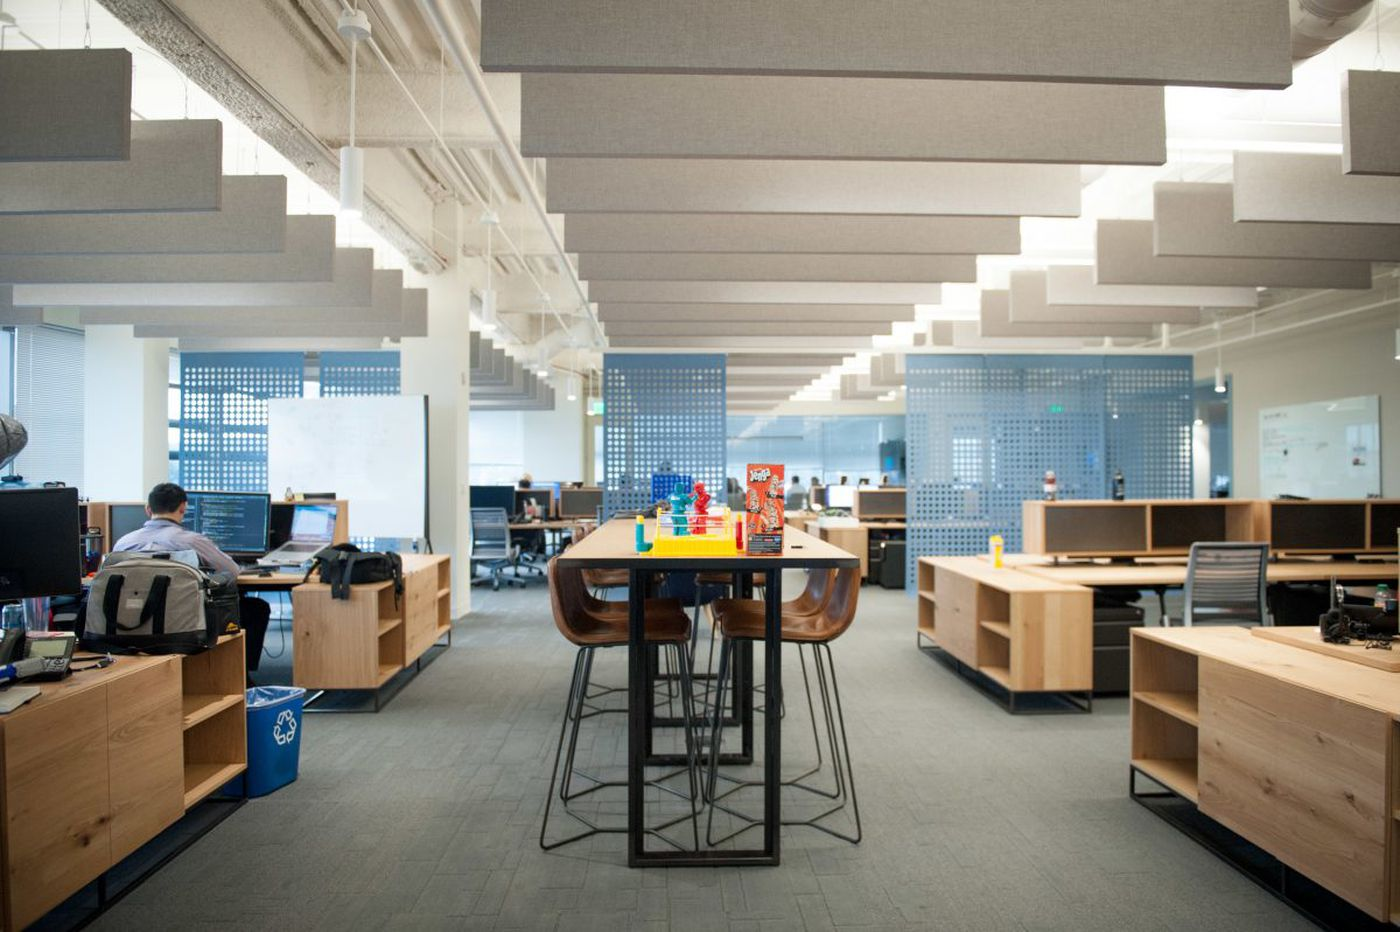 CardConnect's CEO Jeffrey Shanahan talks about creating an office space that 'feels like Silicon Valley in the Delaware Valley'